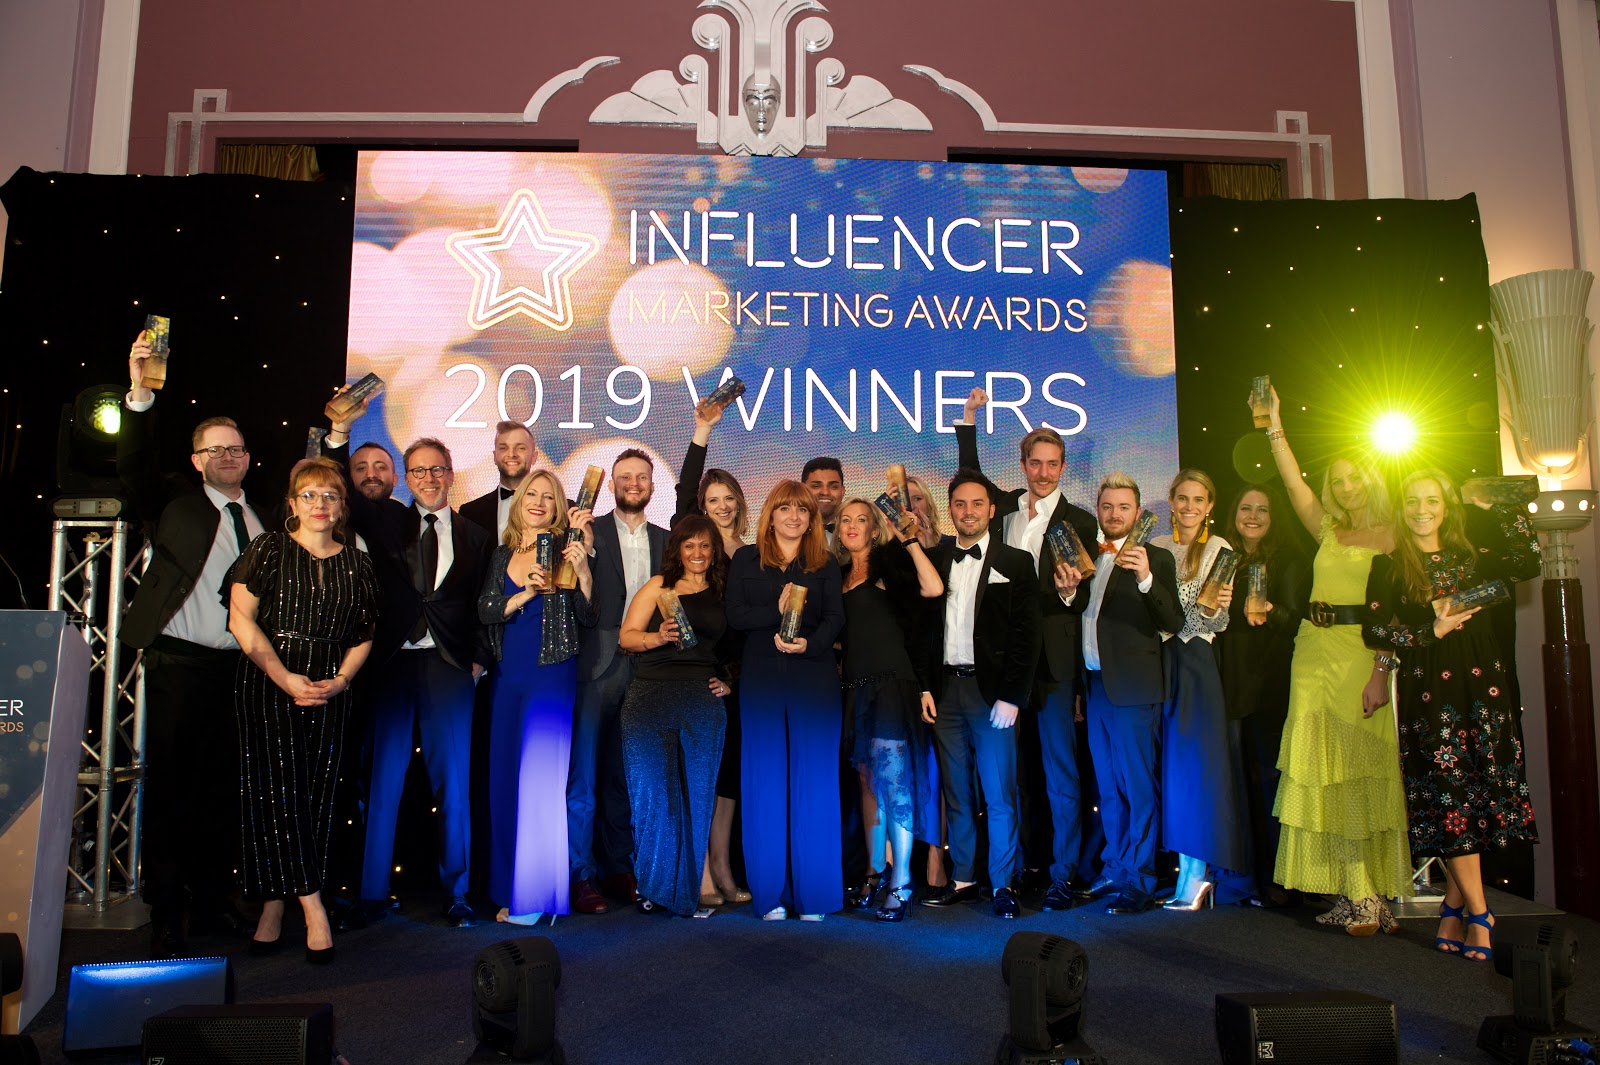 Traackr and Gold Winners at Influencer Marketing Awards 2019